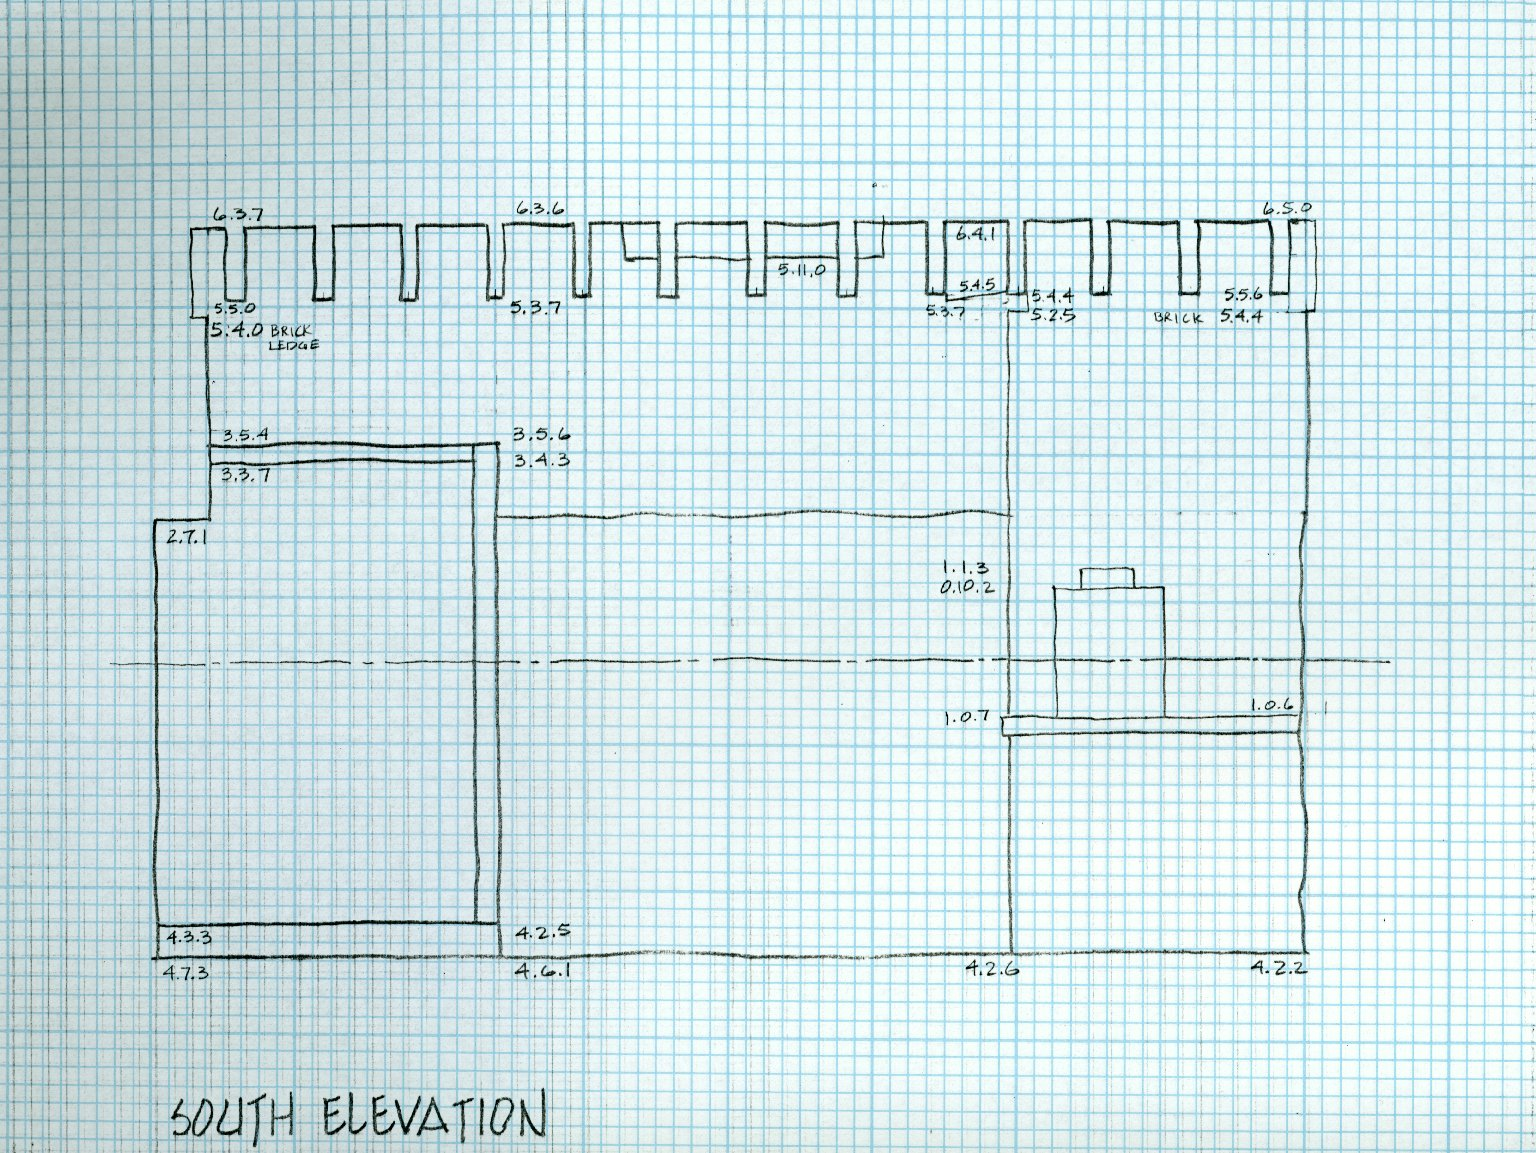 South Elevation, Laundry Elevations, North Terrace, sheet 3 of 5, detail